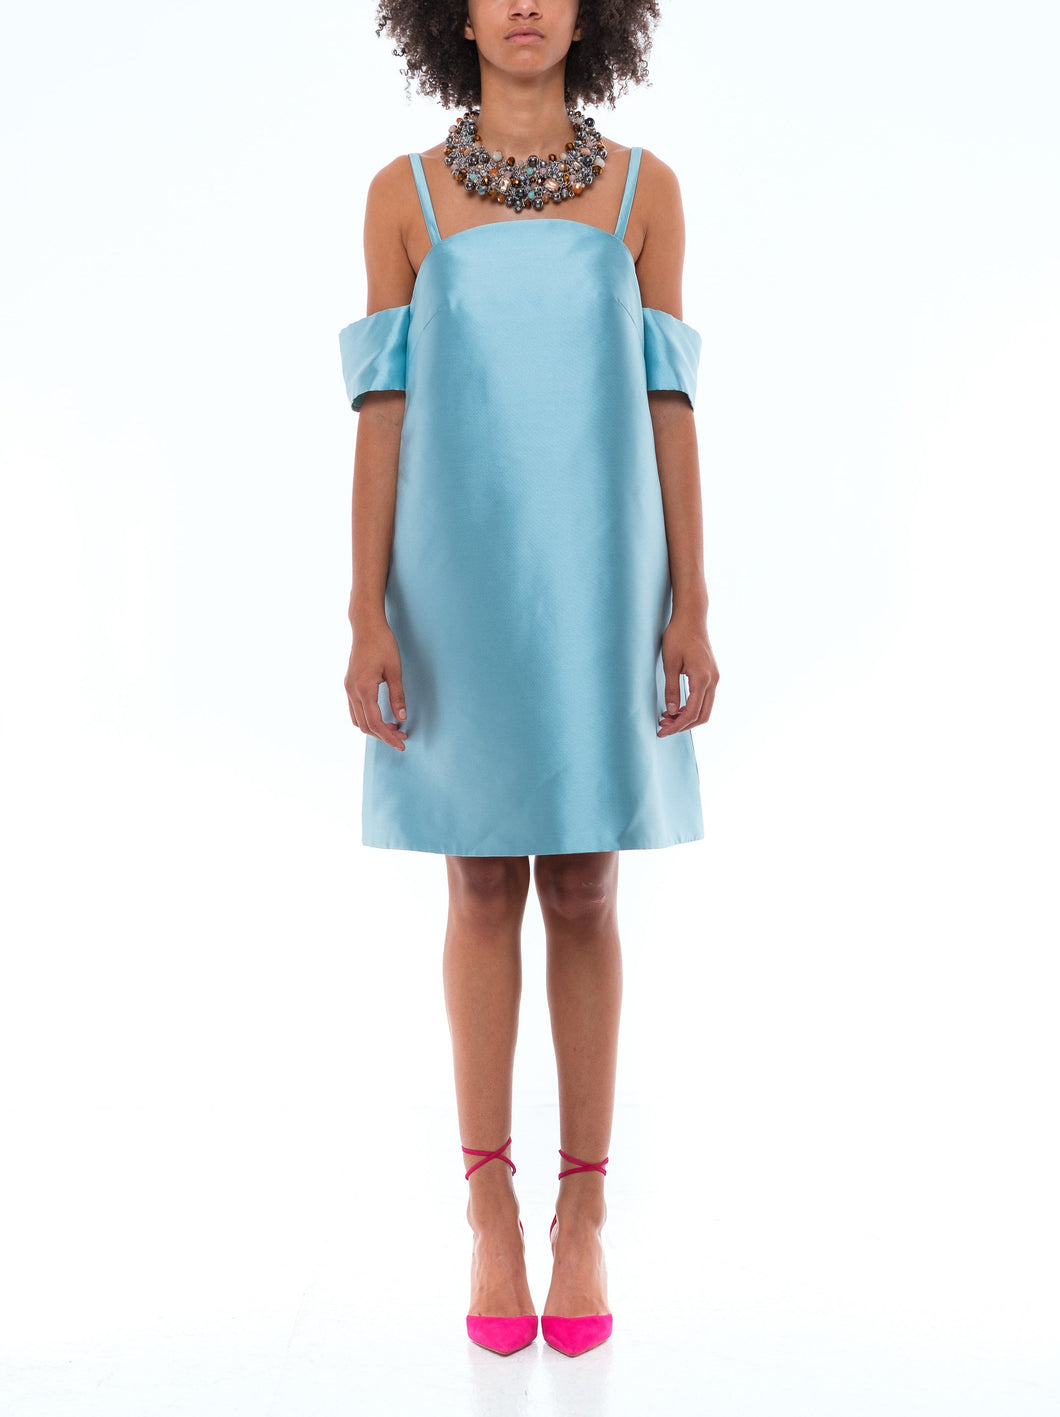 Nona Dress - Sky Blue